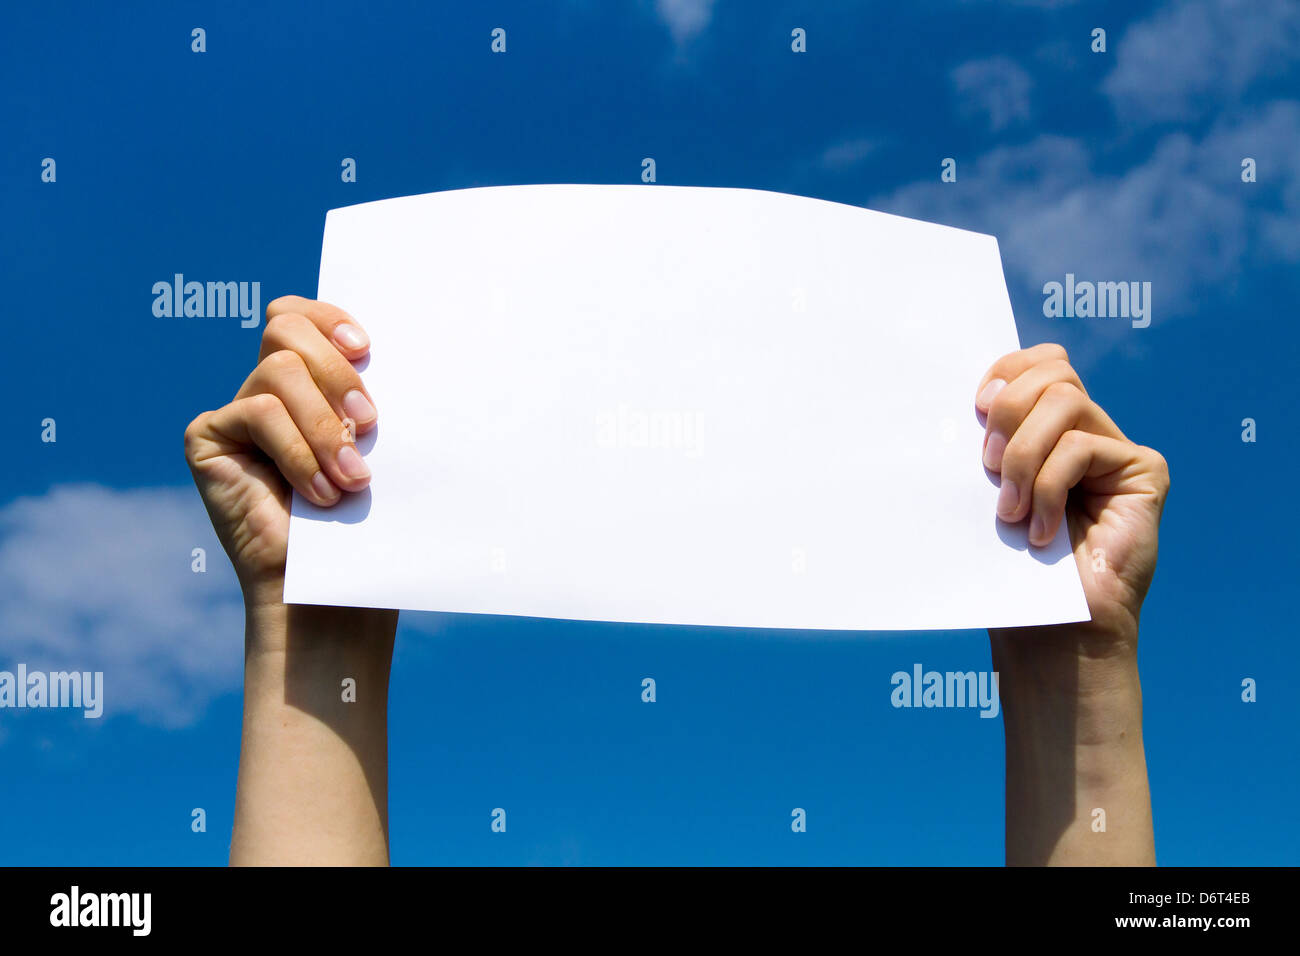 blank page in hands on blue sky background - Stock Image